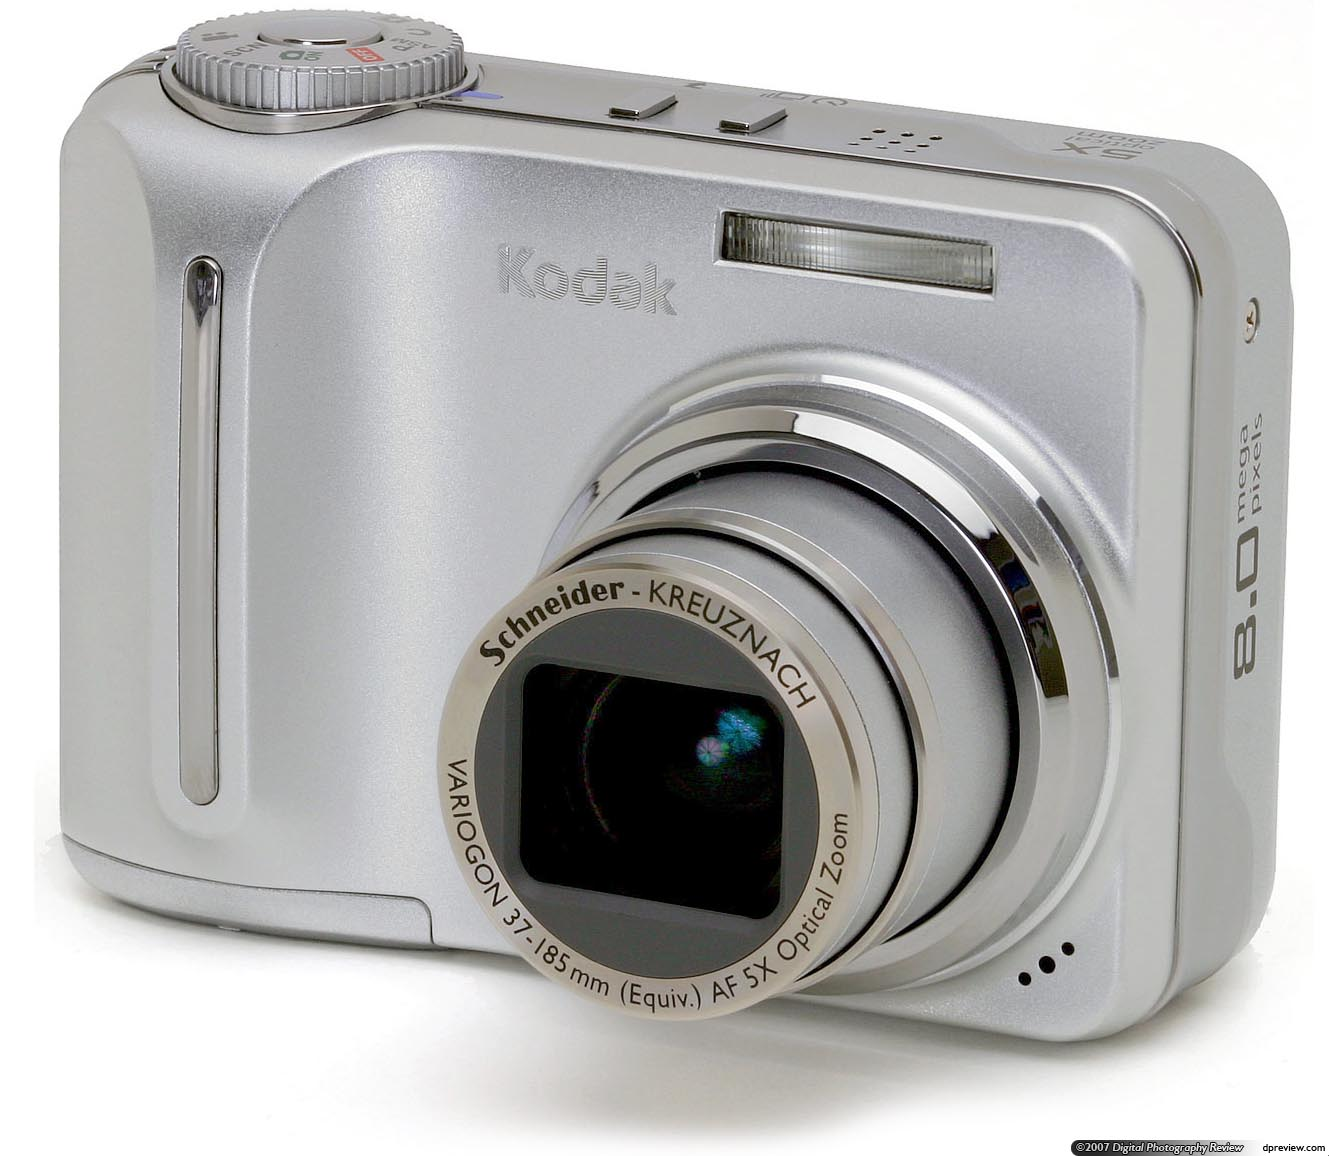 Kodak Easyshare C875 Review: Digital Photography Review